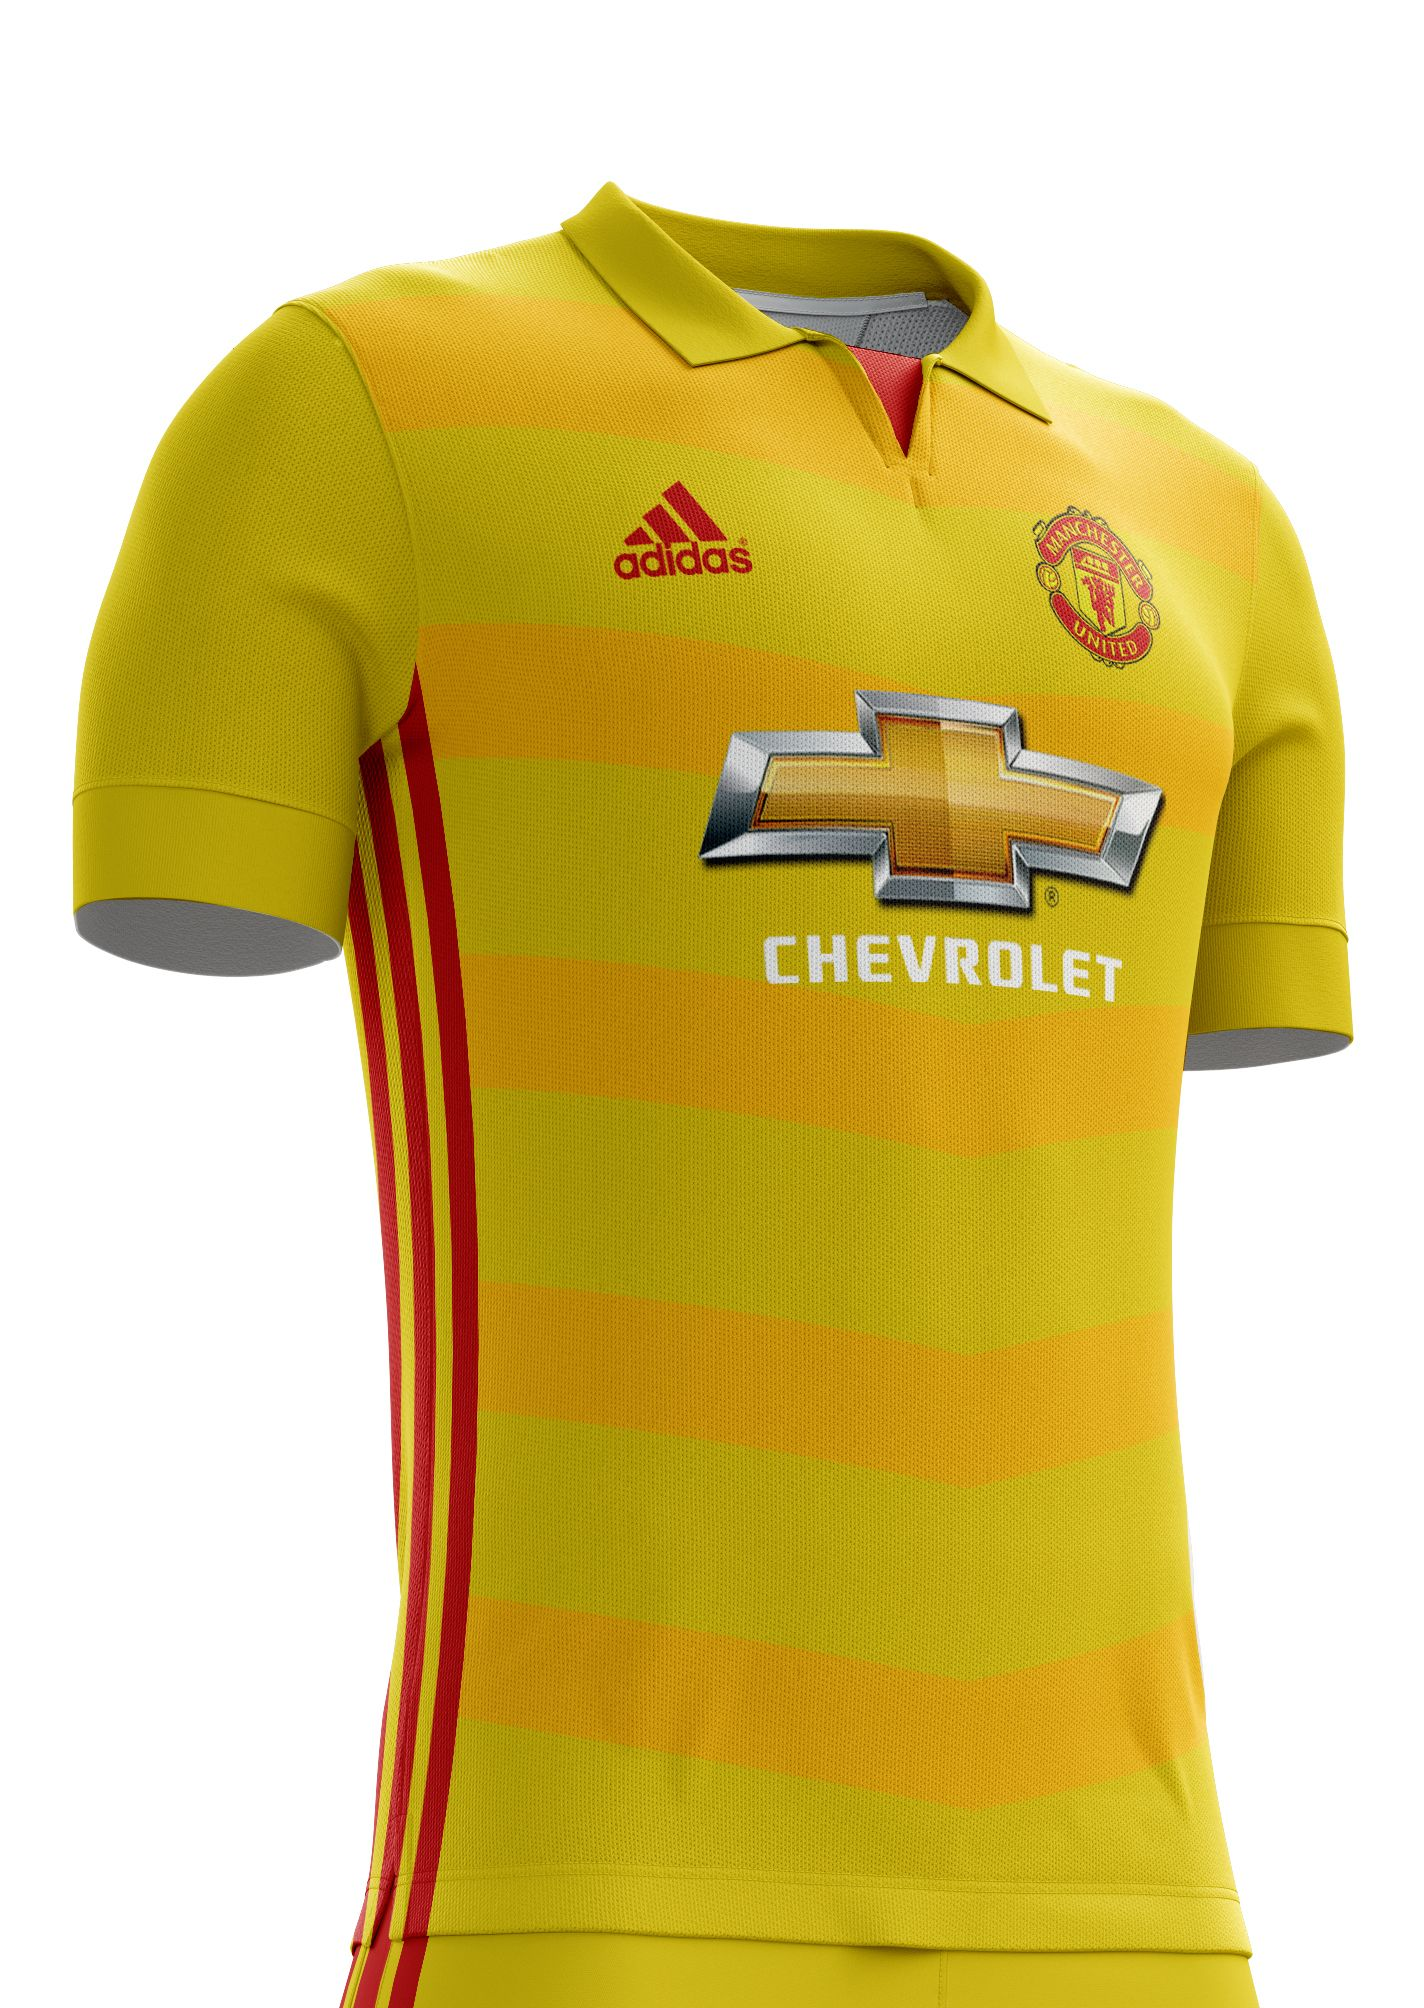 the best attitude 14ac9 4cd8e Some of you ask me to design Manchester United kits,sow I ...